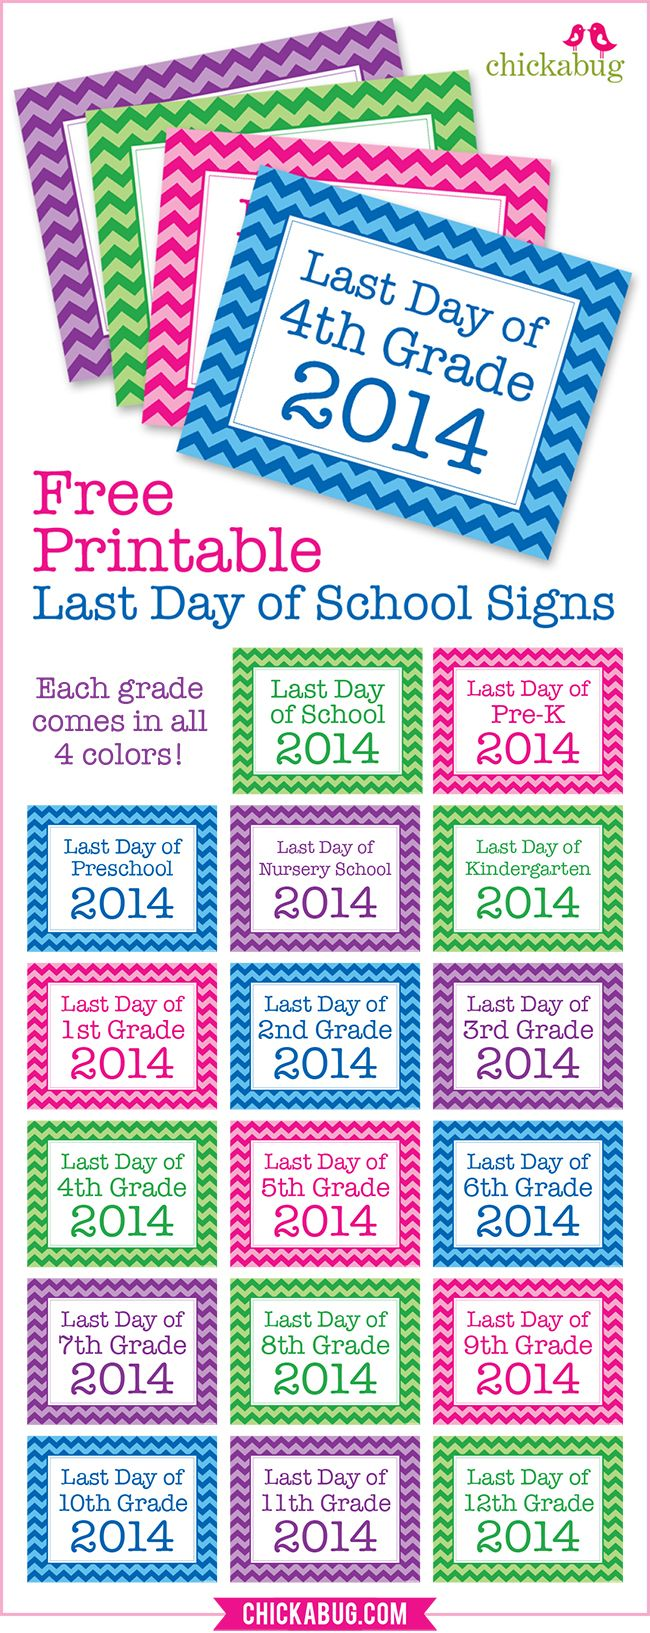 FREE printable last day of school signs 2014